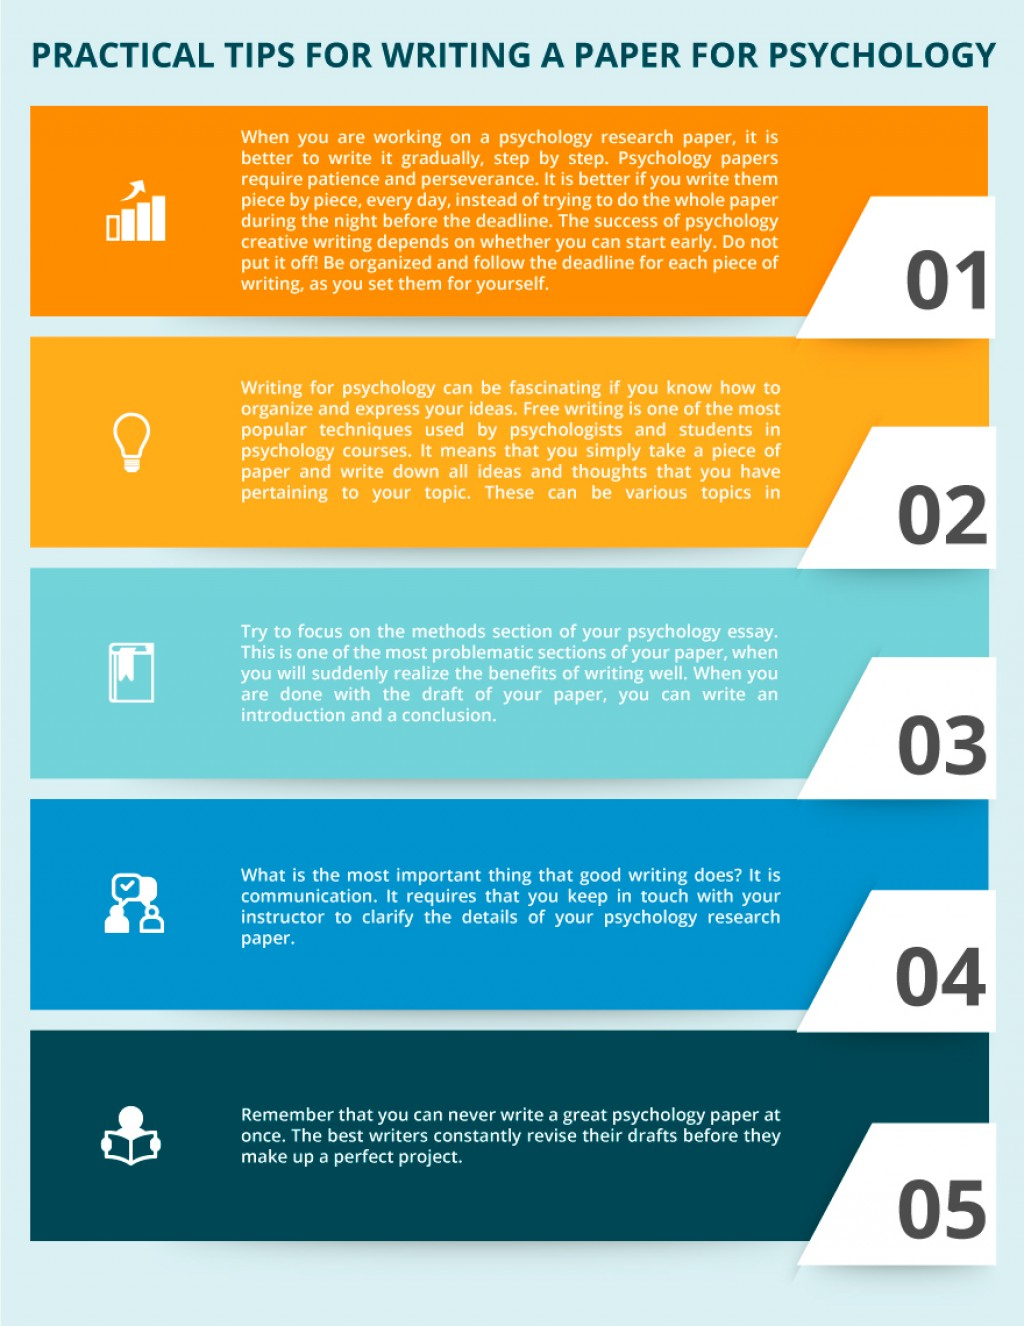 009 Research Paper Tips Infographic Practical For Writing Psychology  Awesome College Students ALarge